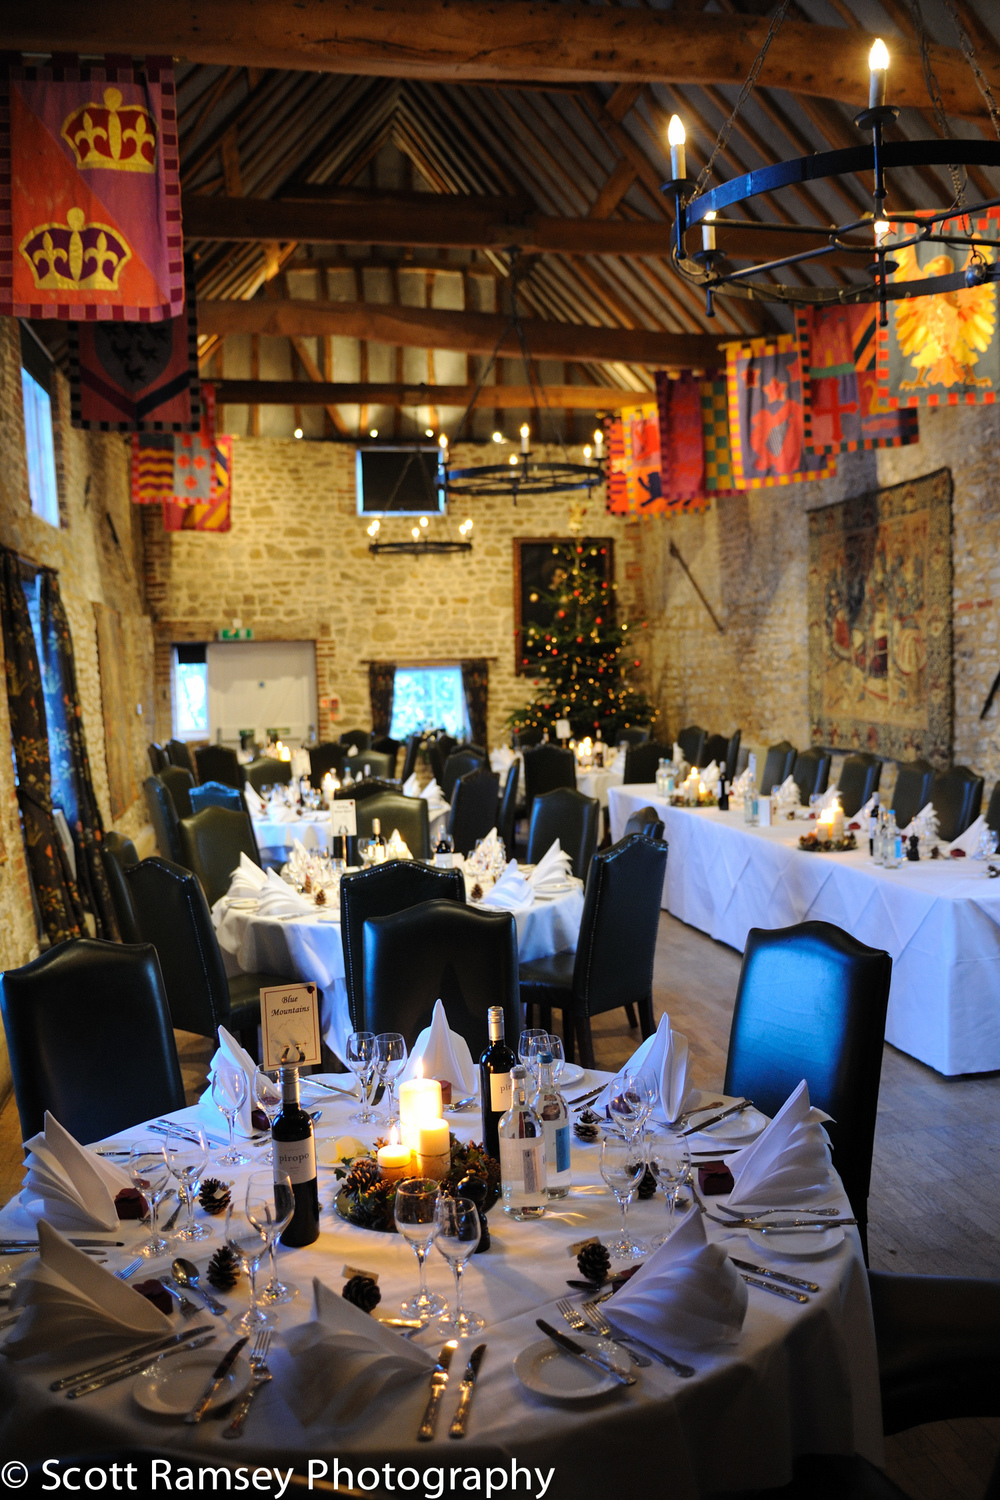 Winter-Wedding-Spread-Eagle-Hotel-Midhurst-Jacobean-Hall-031210-